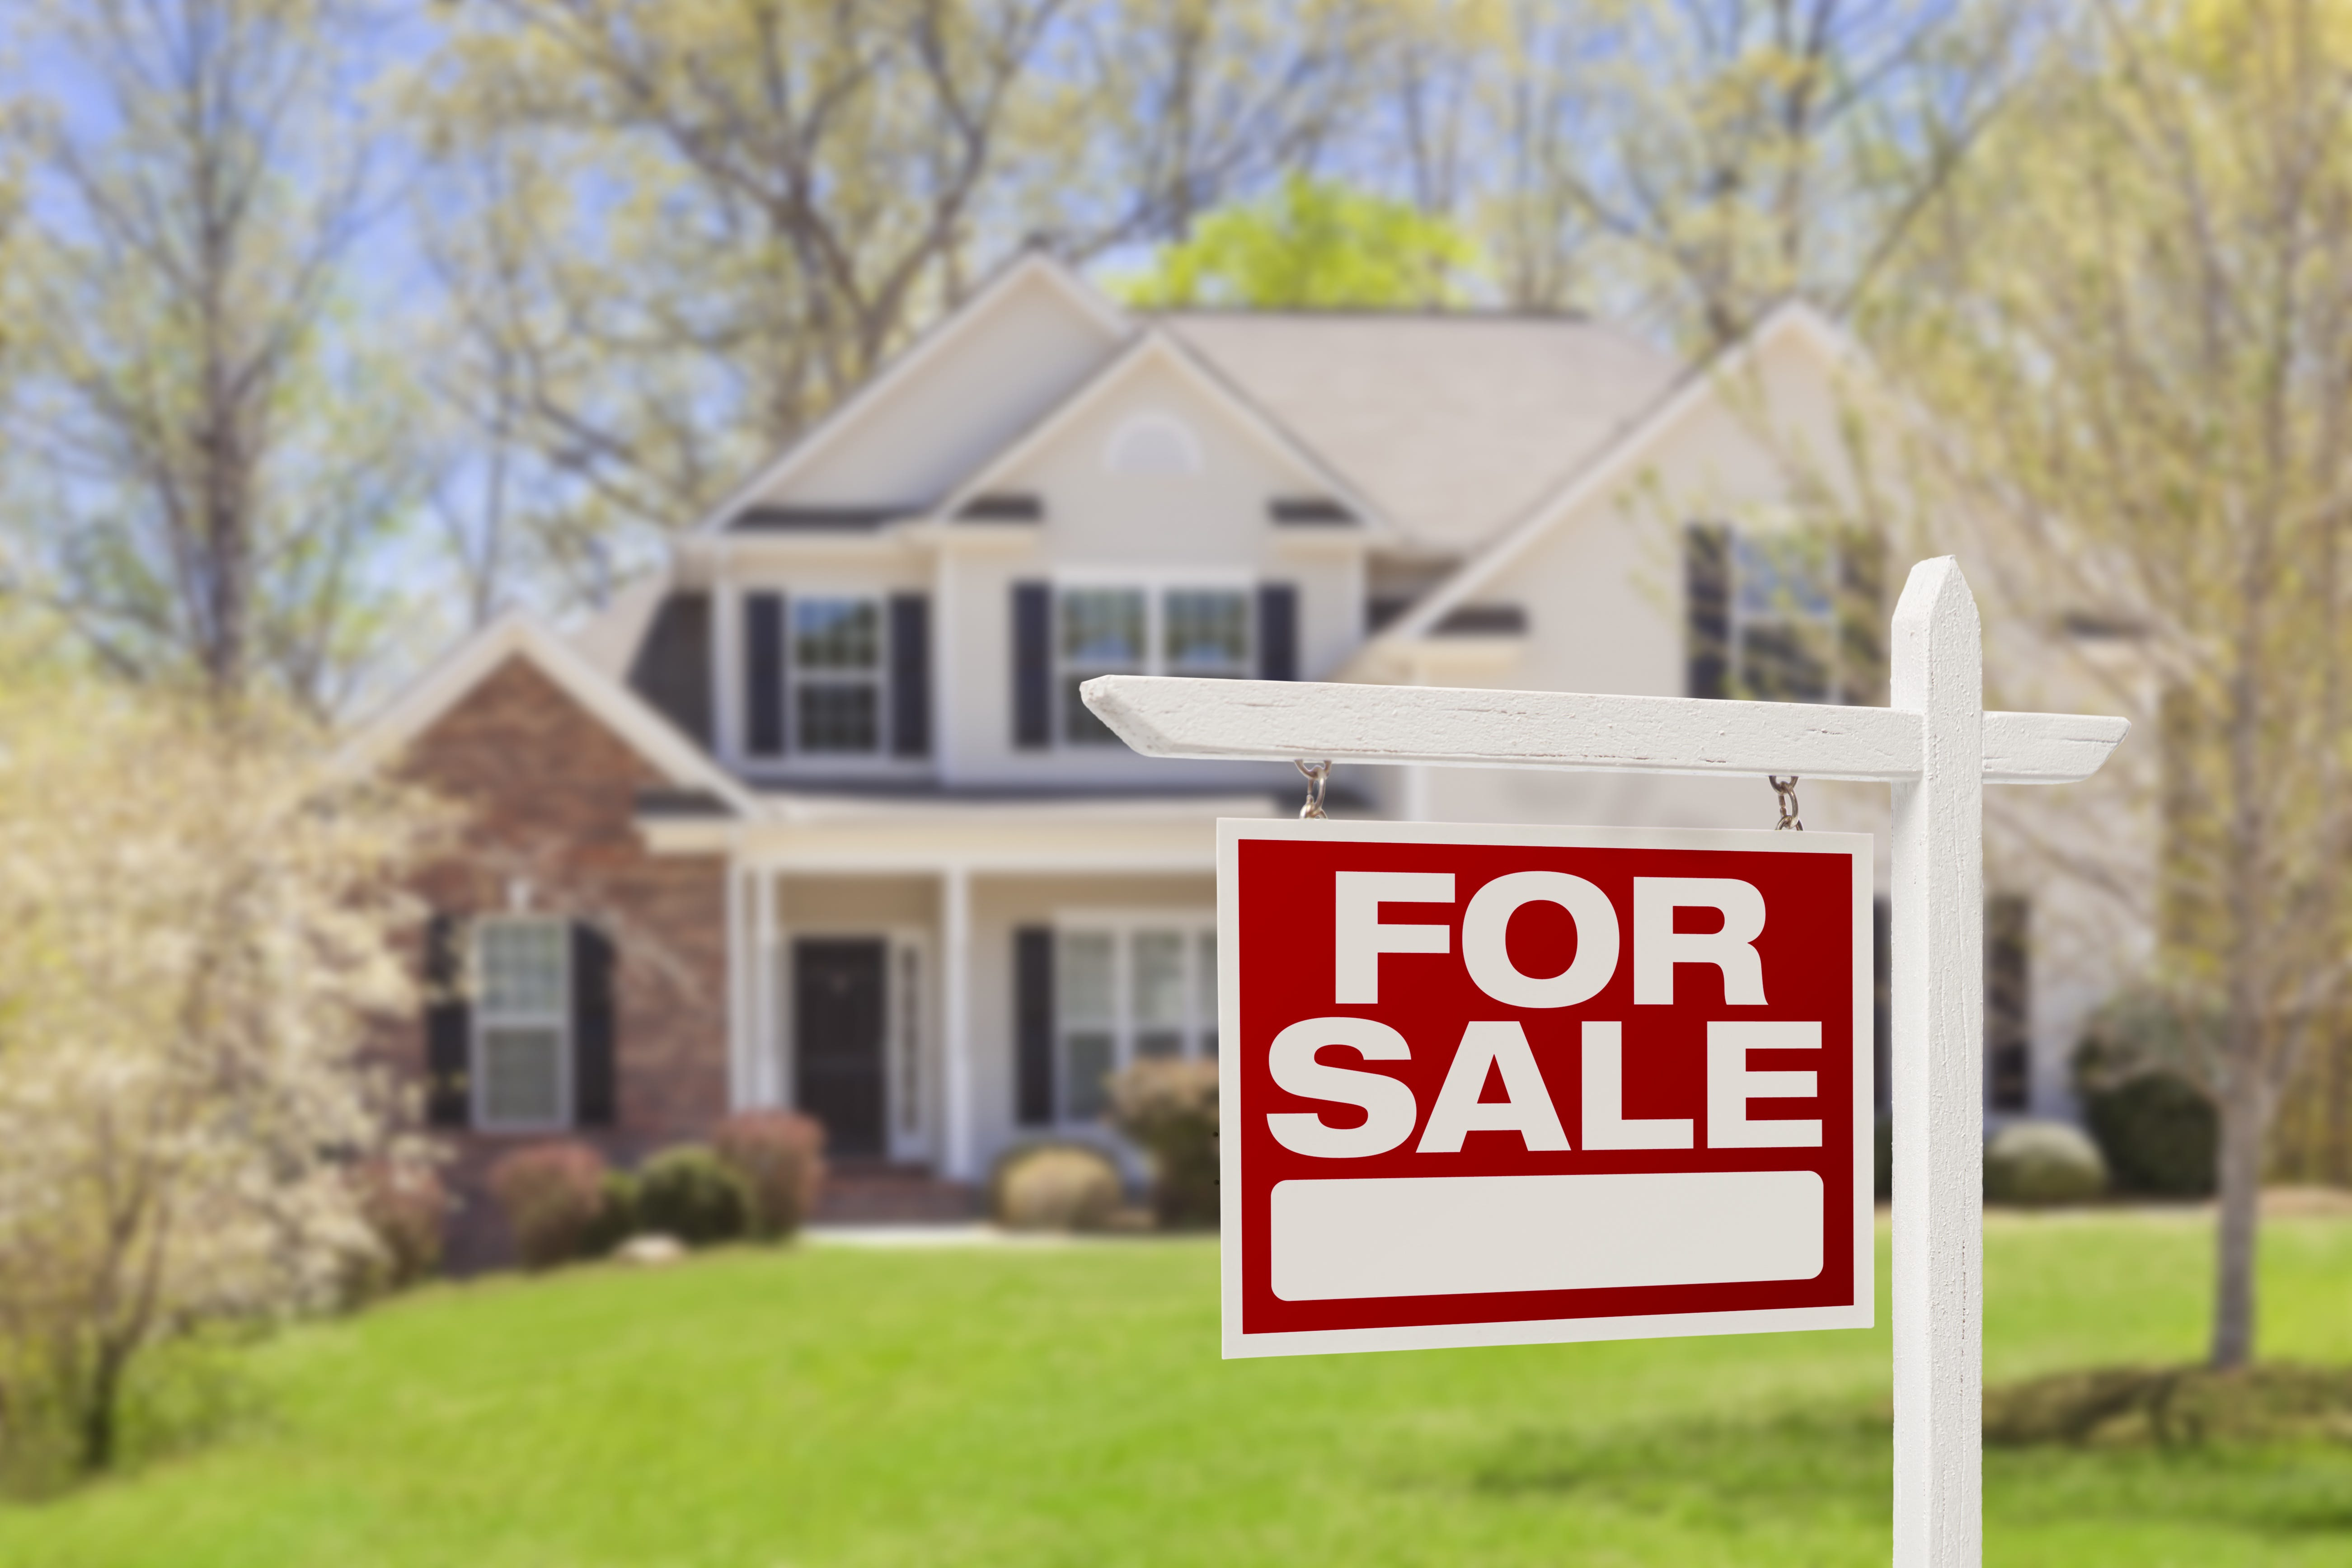 XXX 177735411 & Buying a home? Sellers are using cameras microphones to spy on buyers